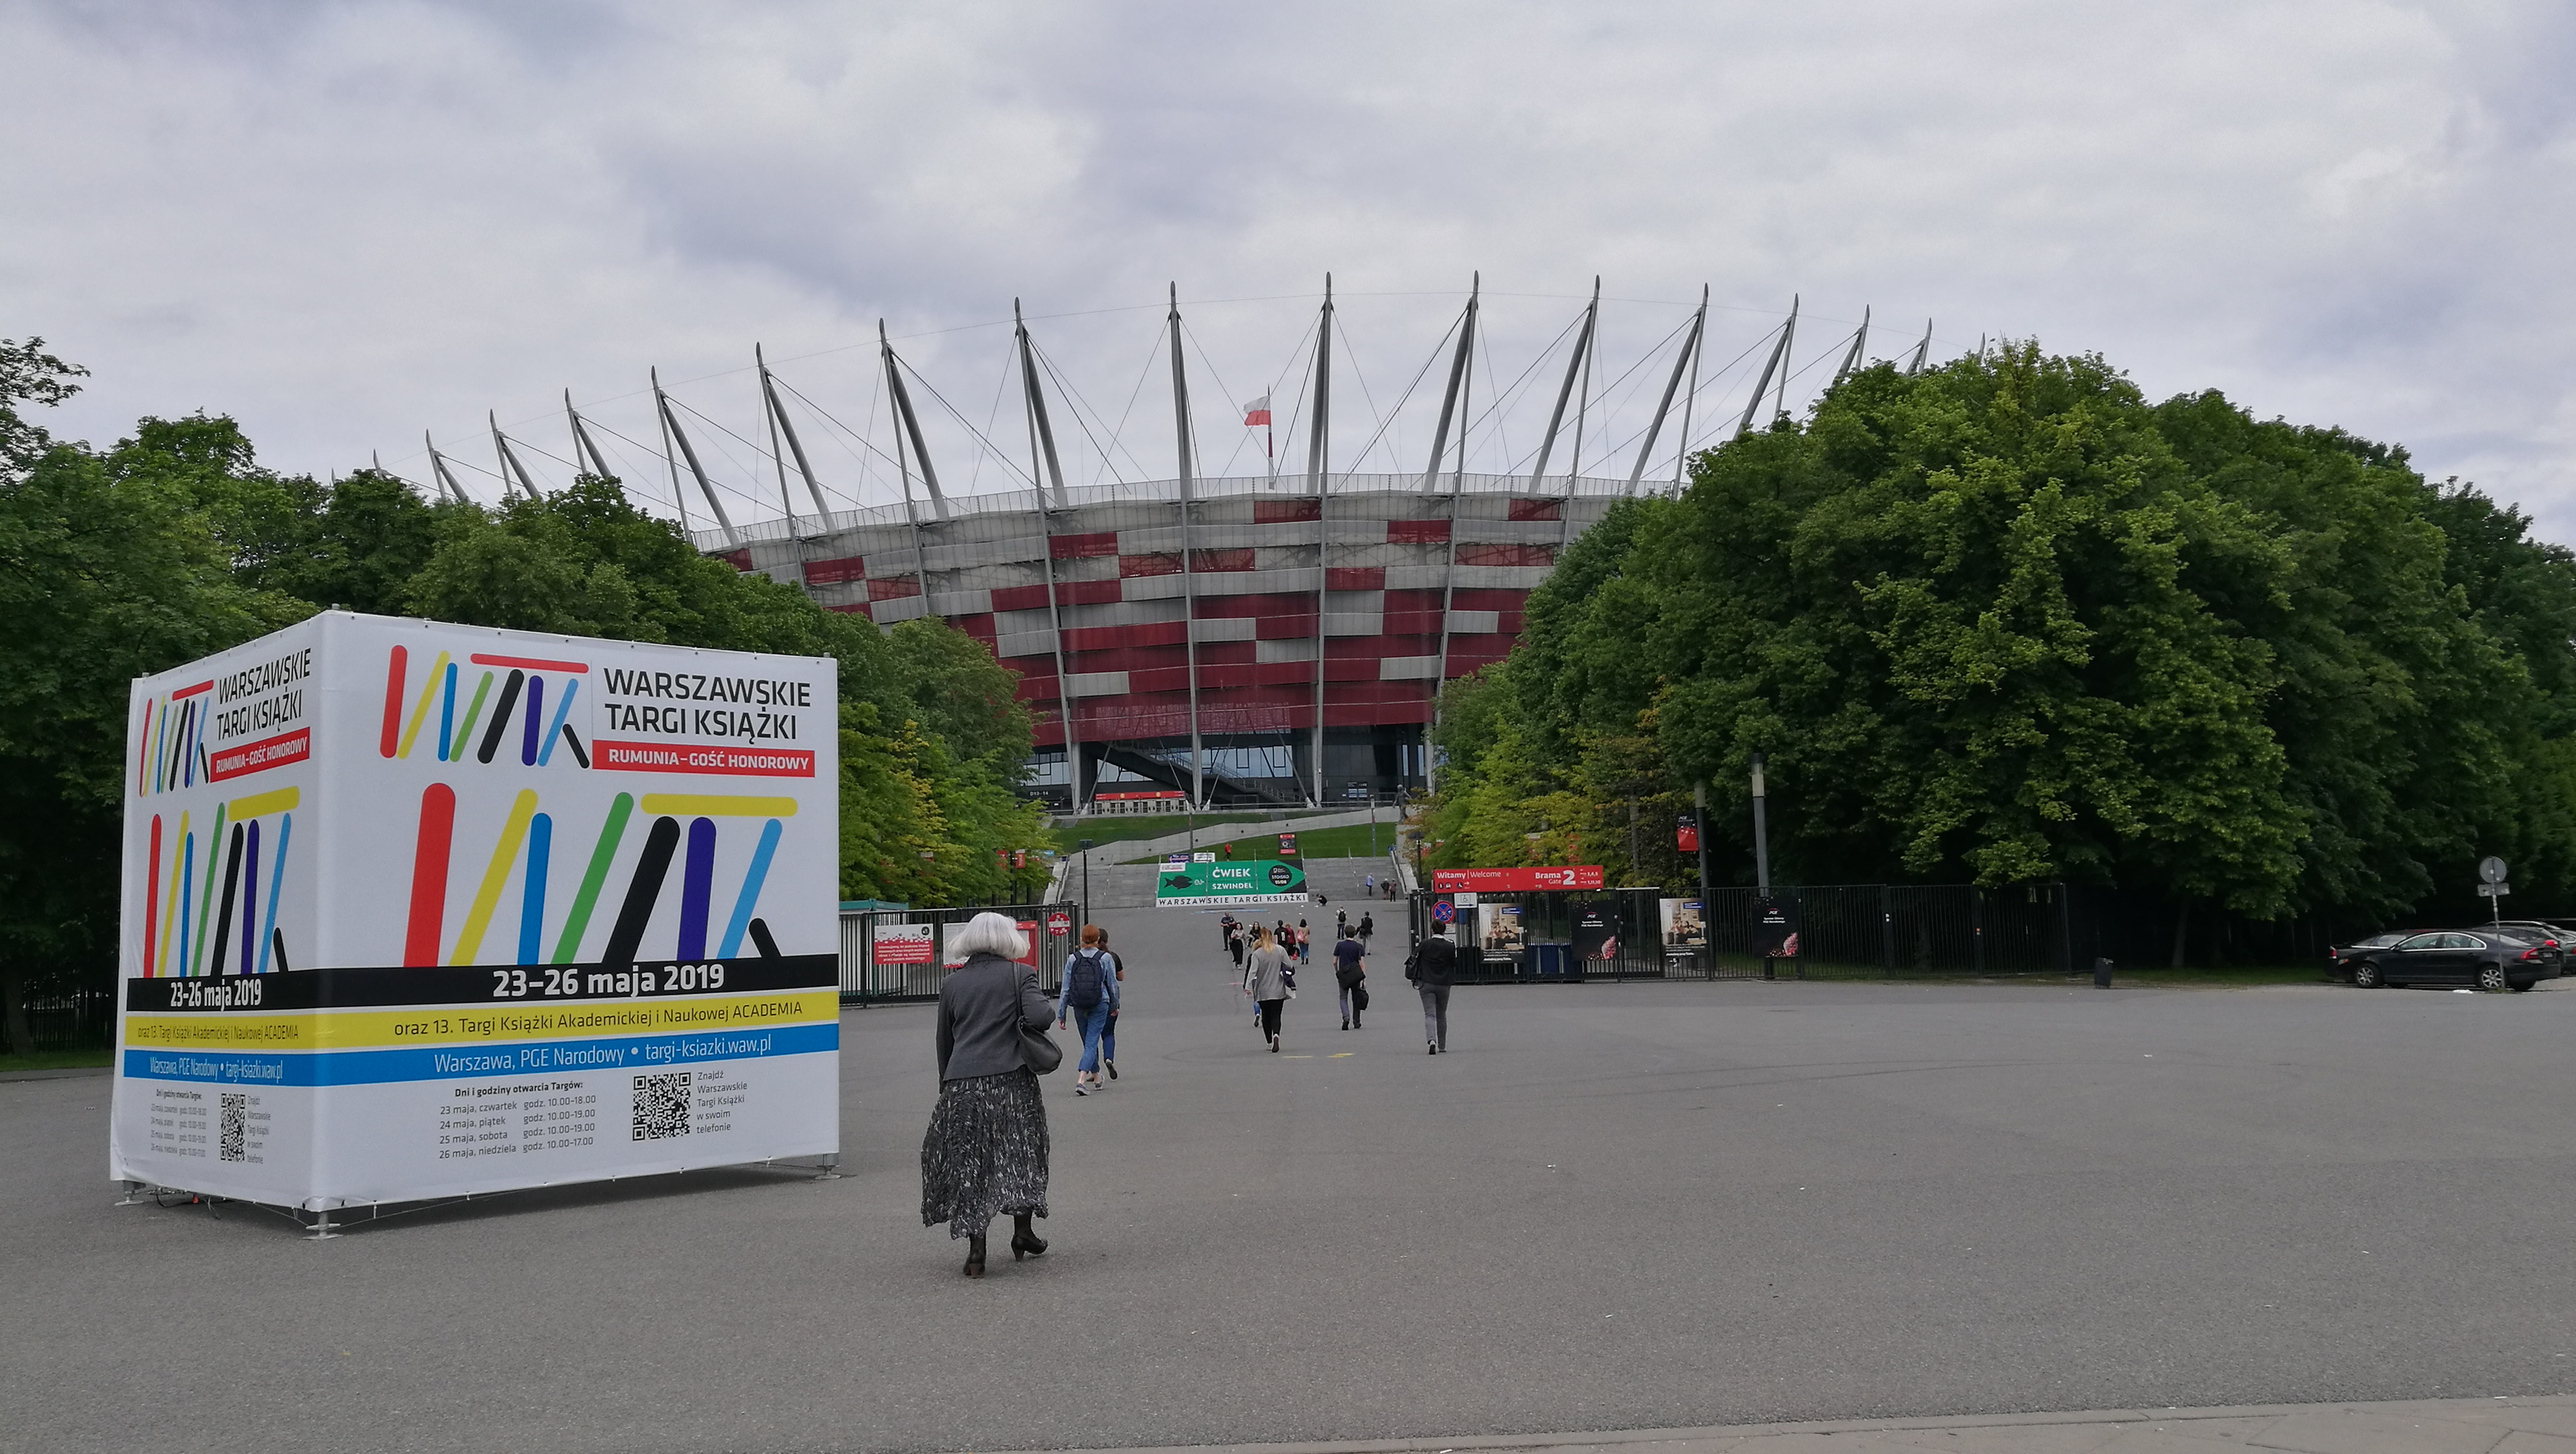 2 Seas Agency Explores The 2019 Warsaw Book Fair